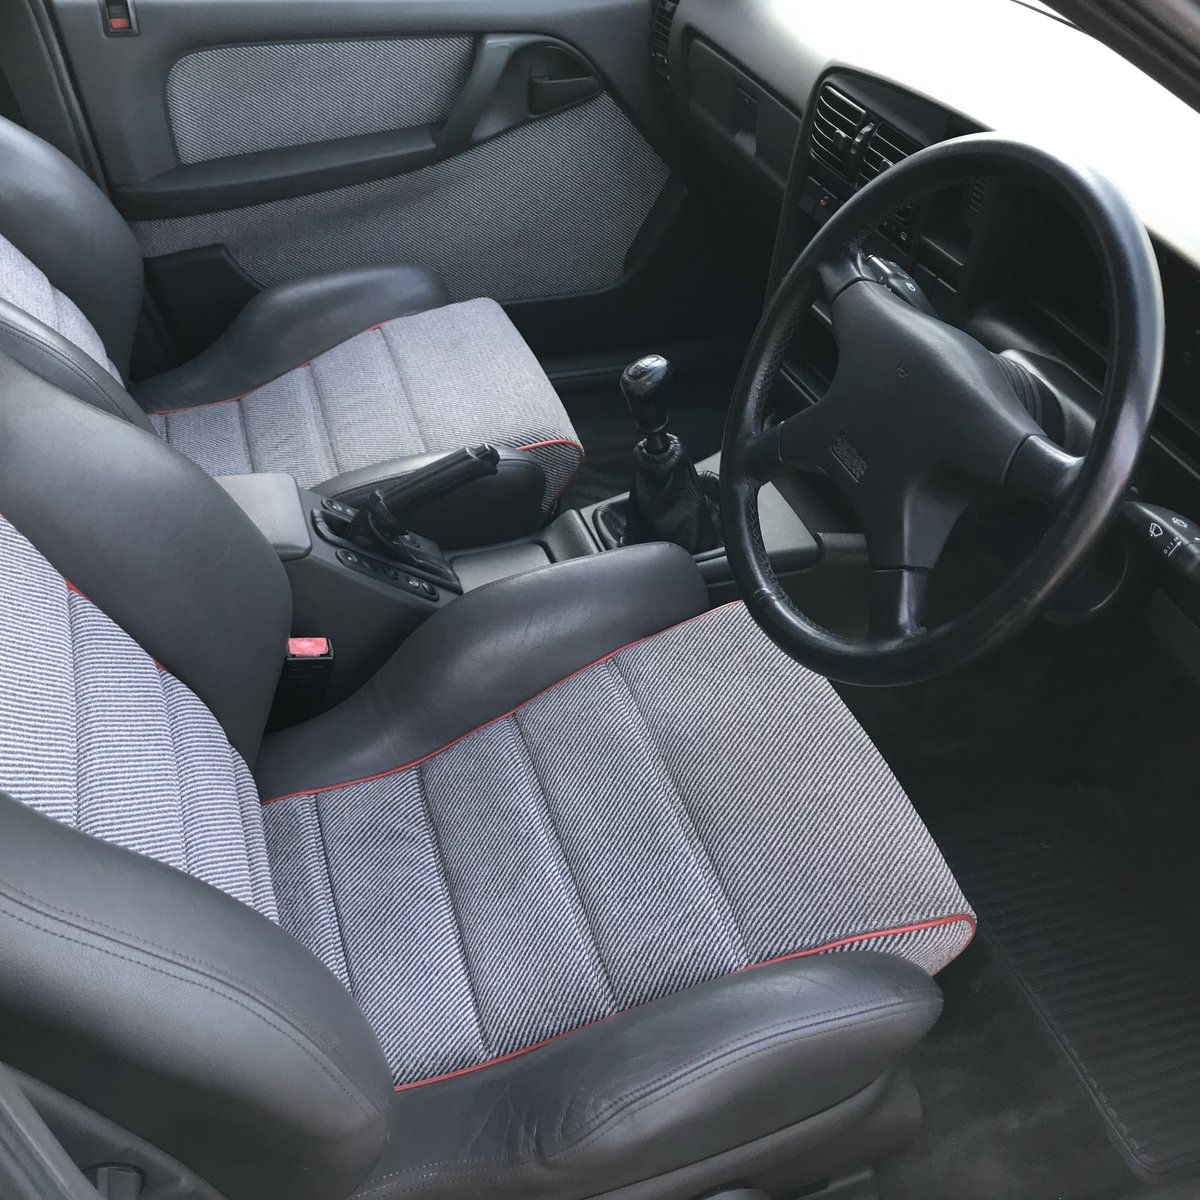 1989 Vauxhall Carlton 3000 Gsi, Manual, Restored  For Sale (picture 3 of 6)